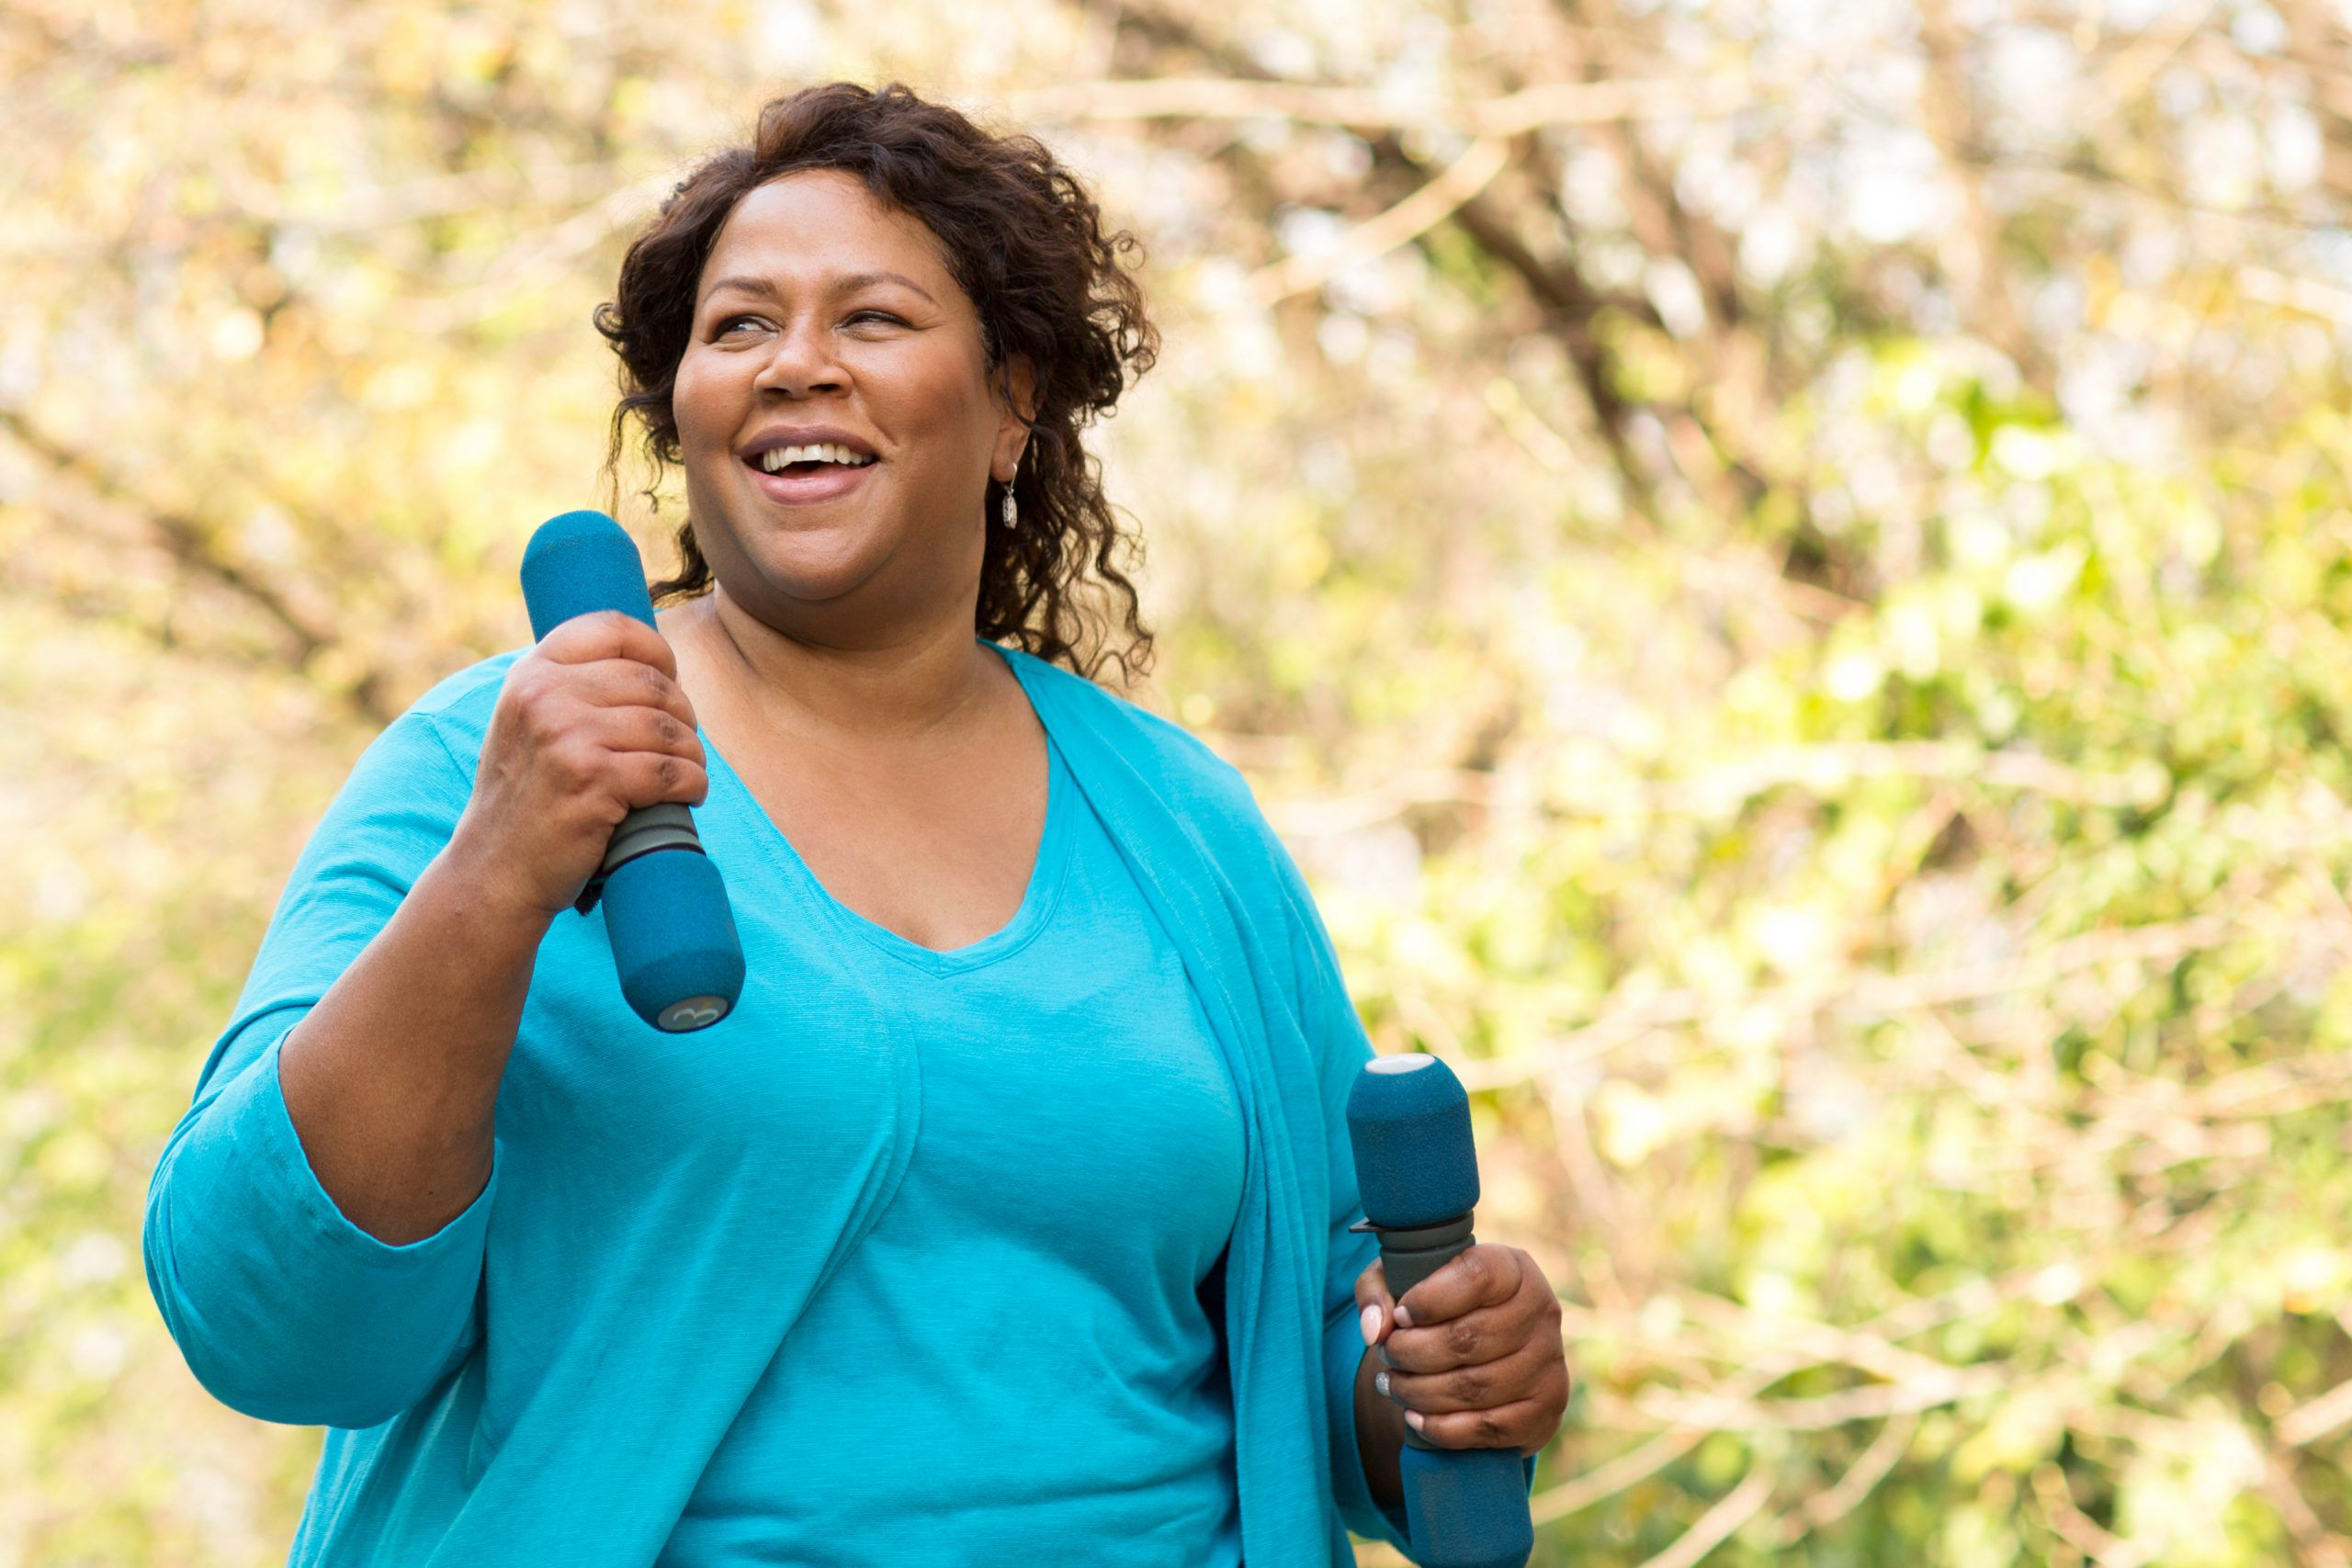 Sponsored: Could a clinically proven weight management program be right for you?